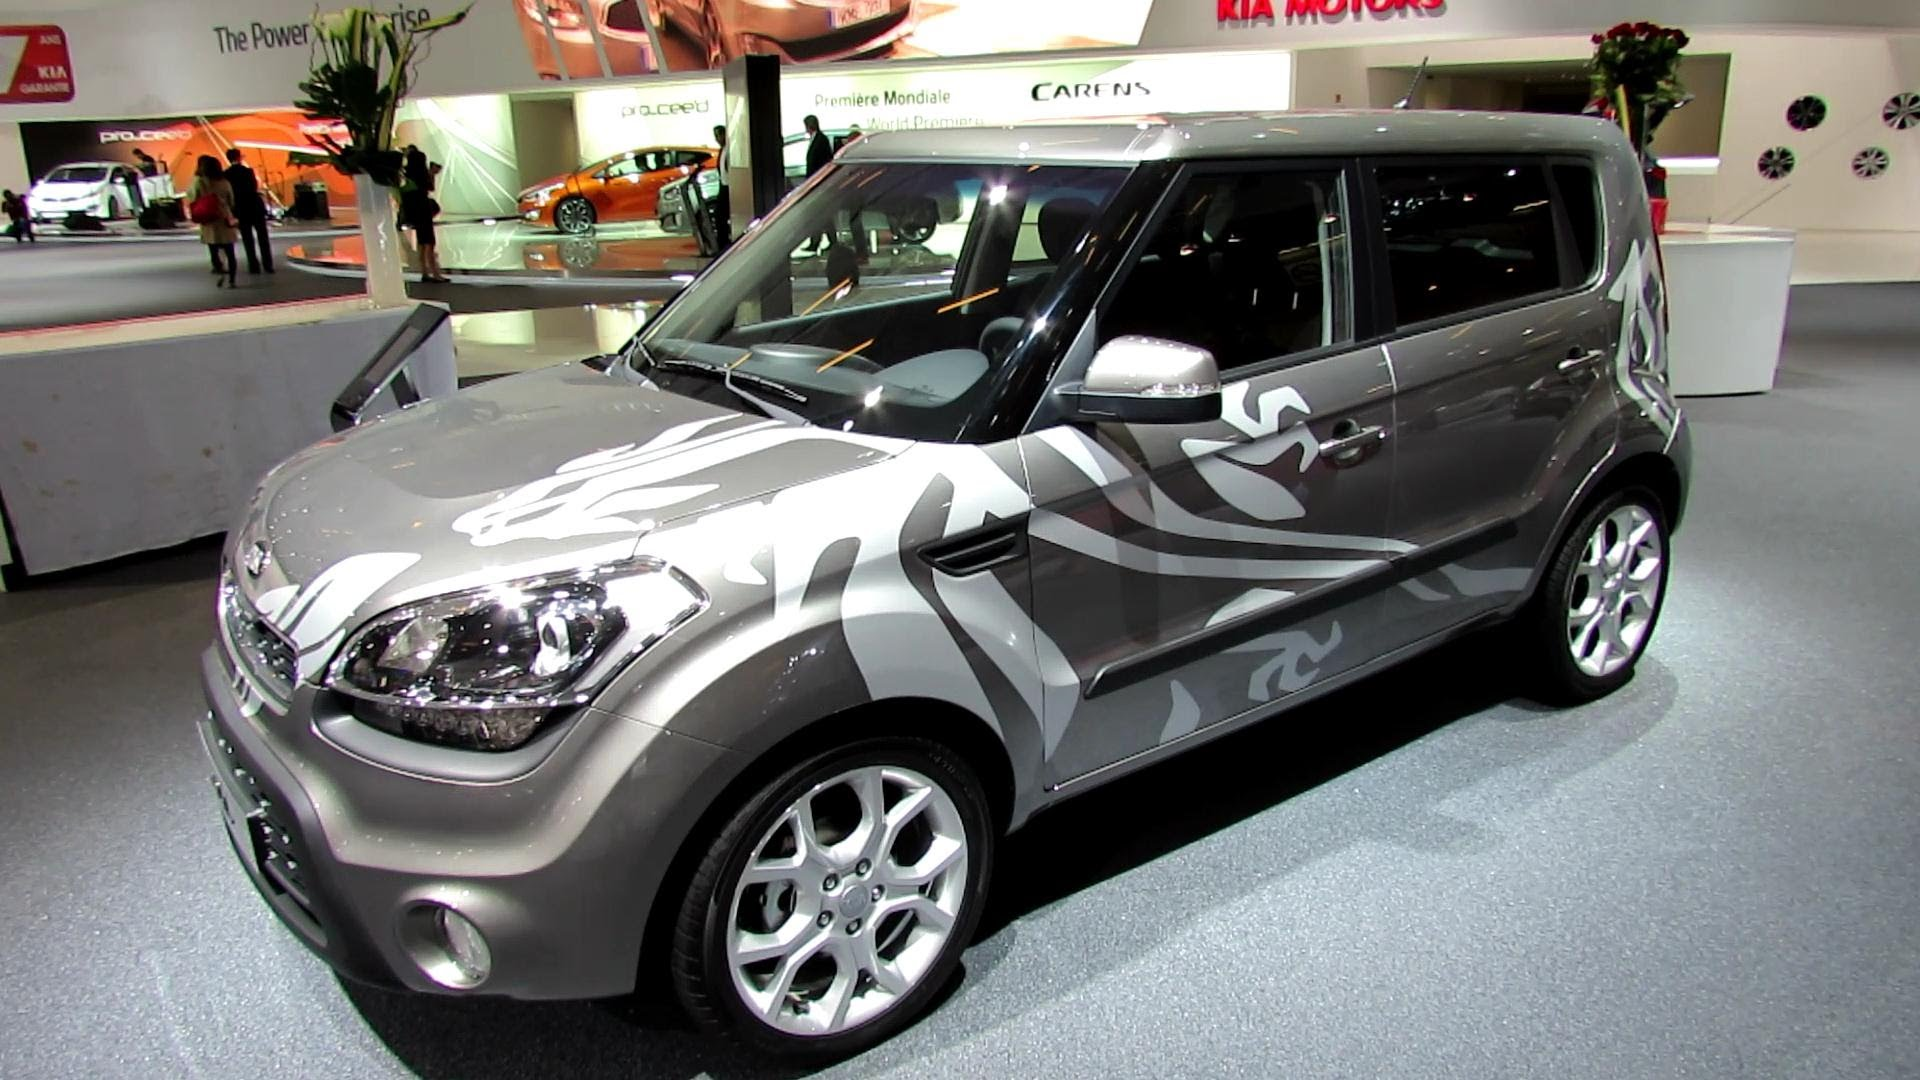 2013 KIA Soul Sport Diesel - Exterior and Interior Walkaround - 2012 Paris Auto Show